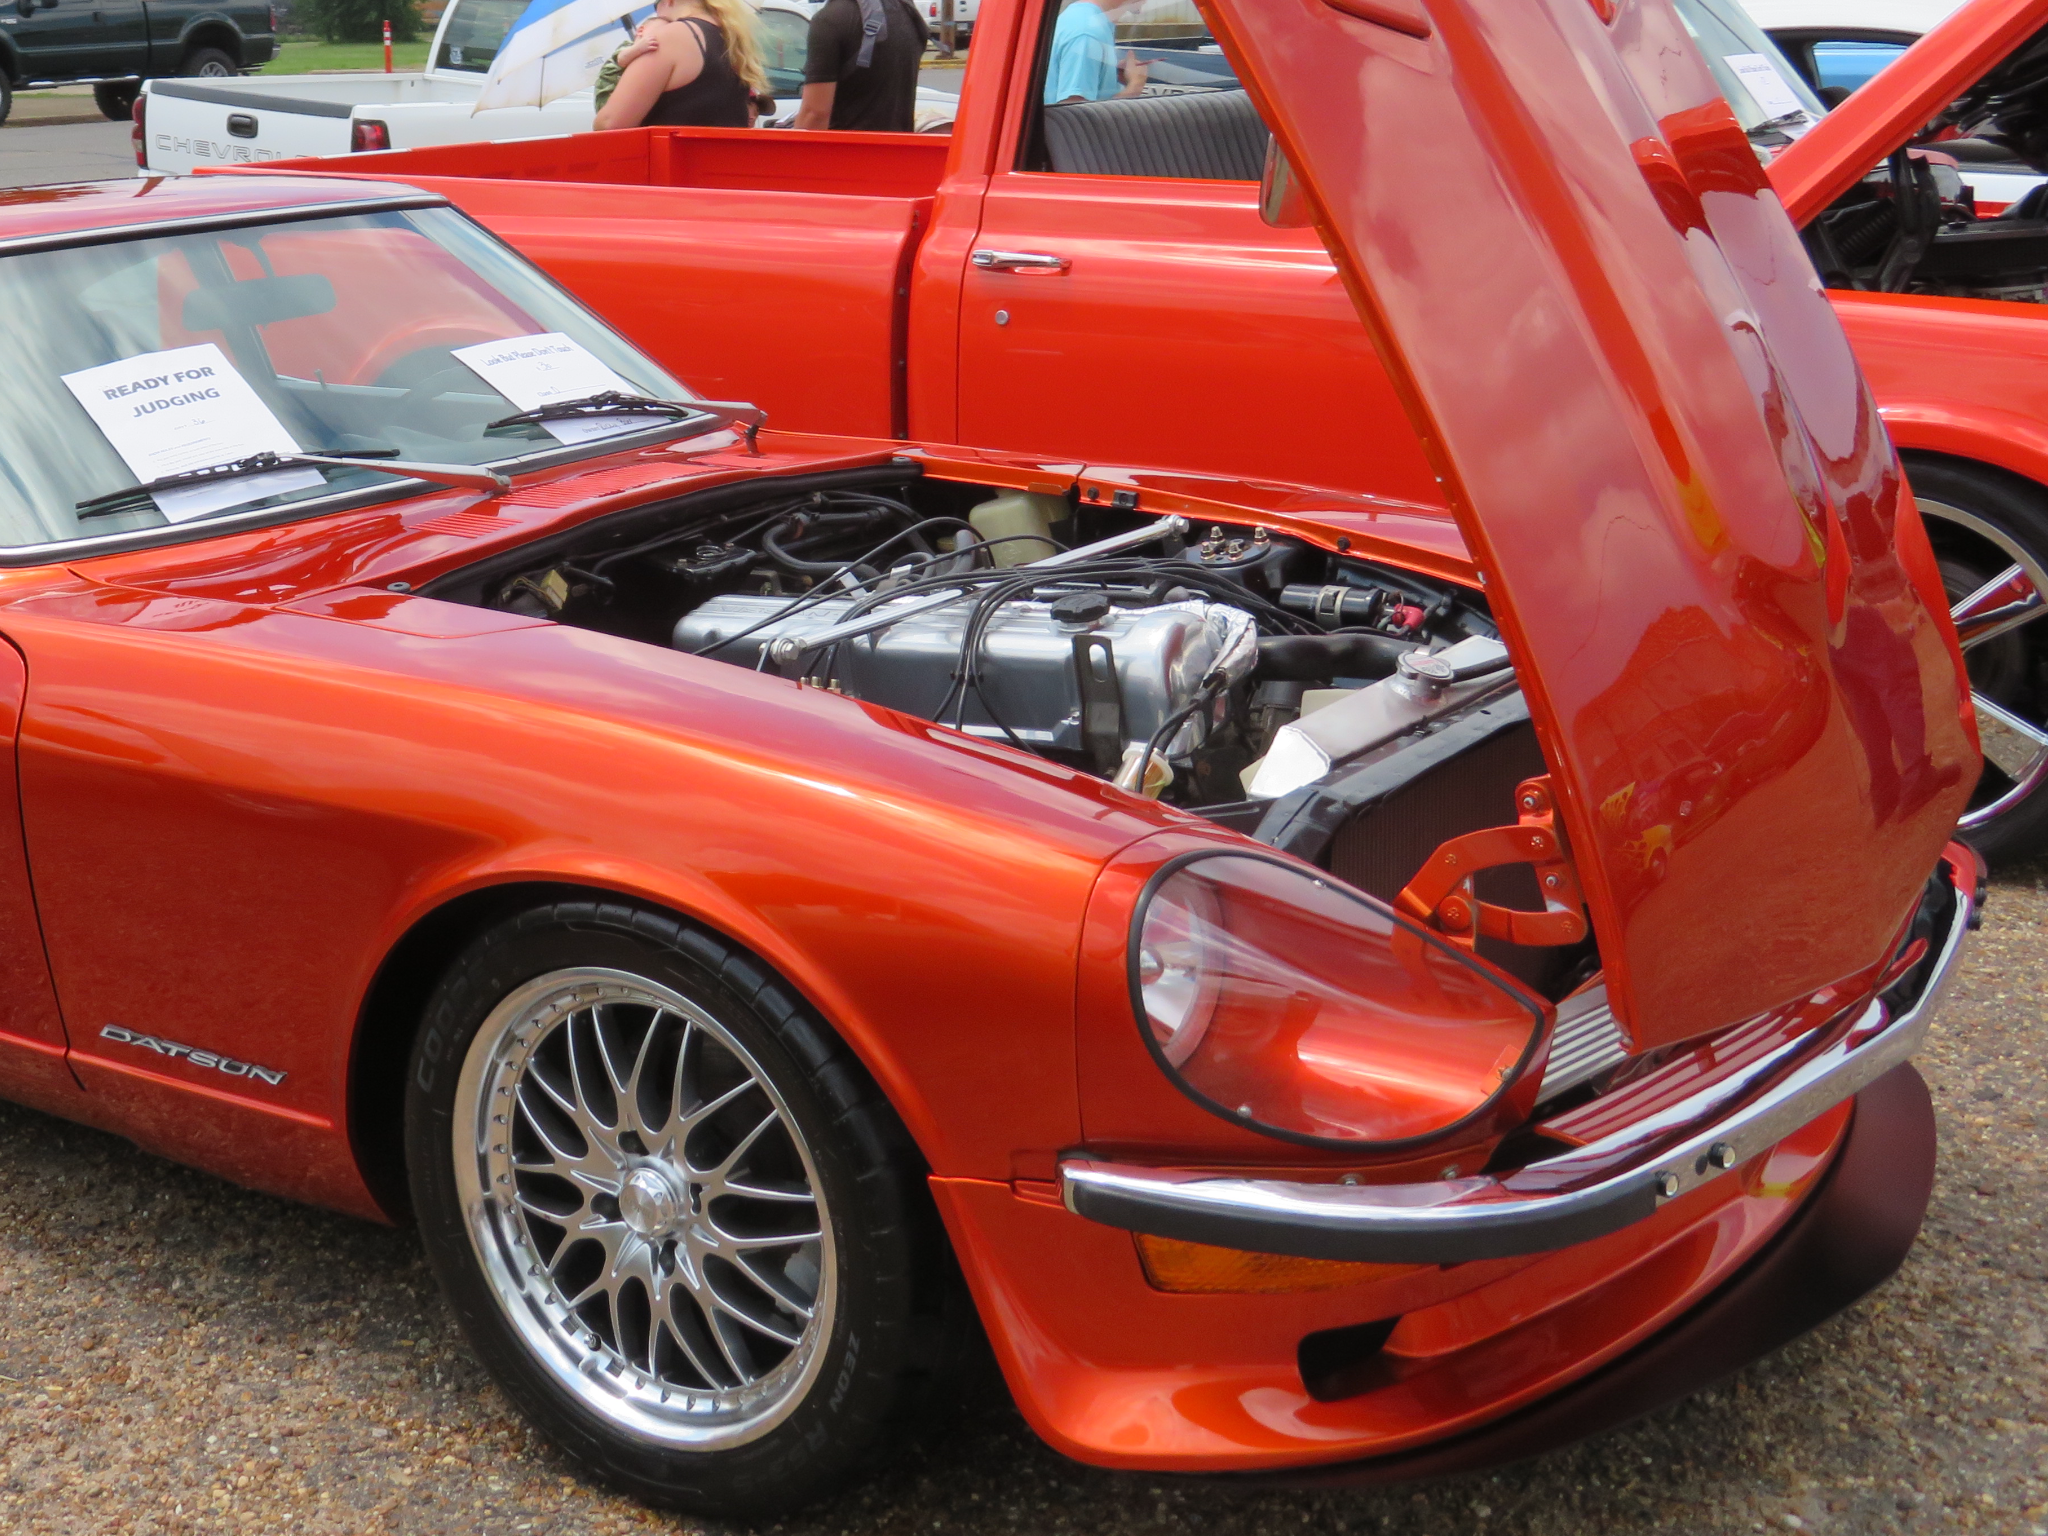 1973 Datsun 240Z, L28 with carbs and a Custom Air Breather